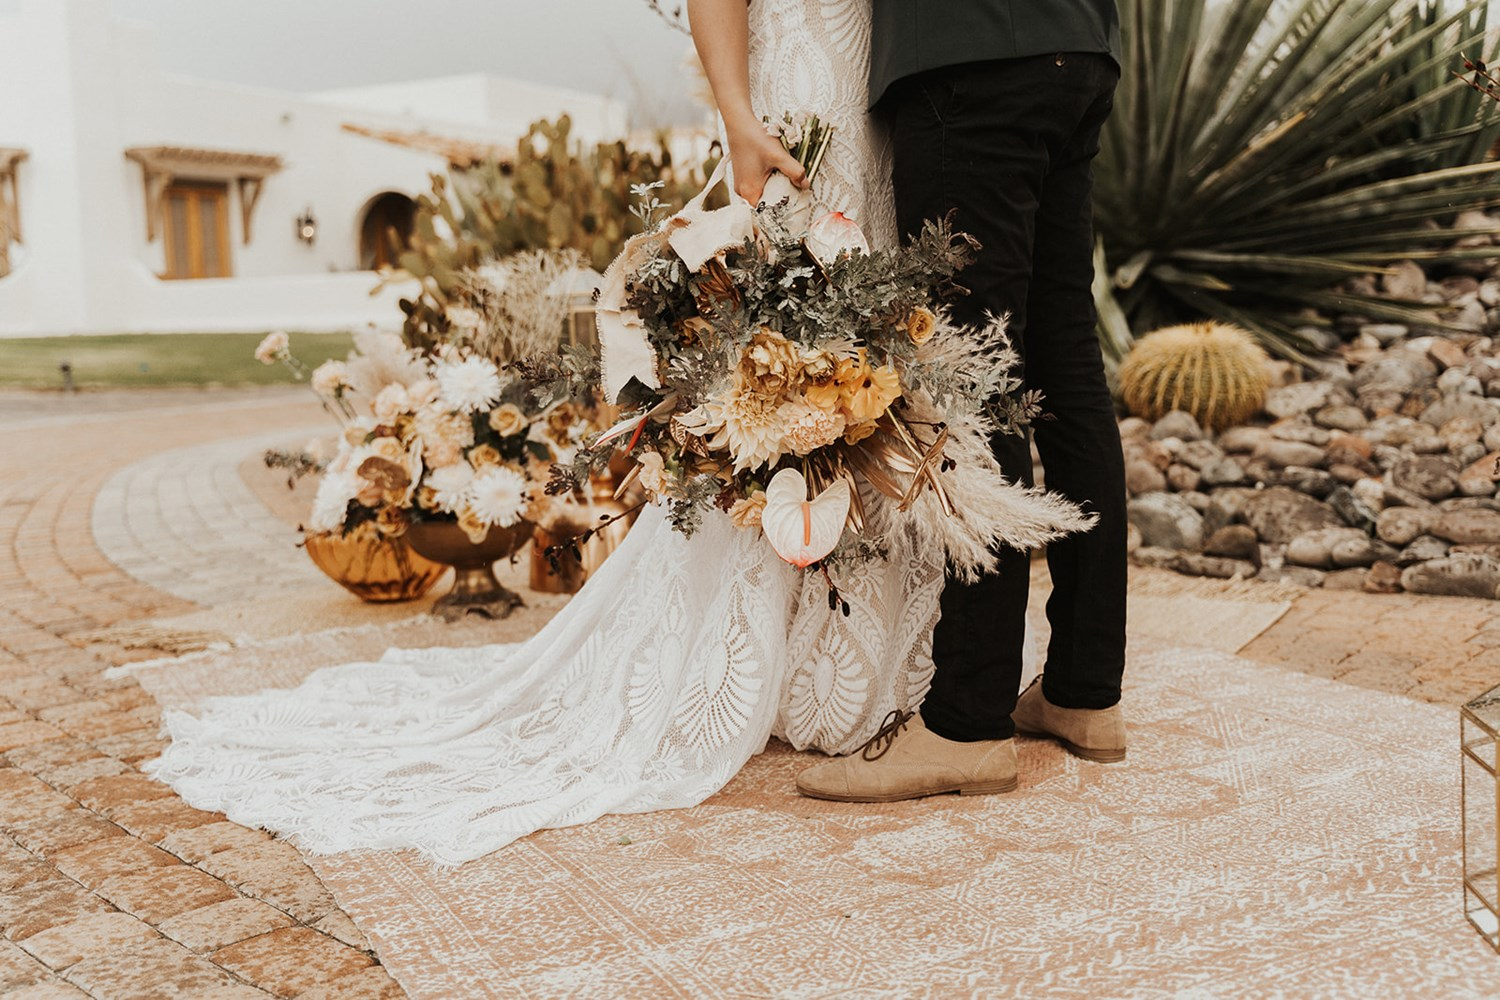 desertshootout_cait_cophoto-0033.jpg Bohemian Palm Springs Wedding Inspiration with a Modern Twist